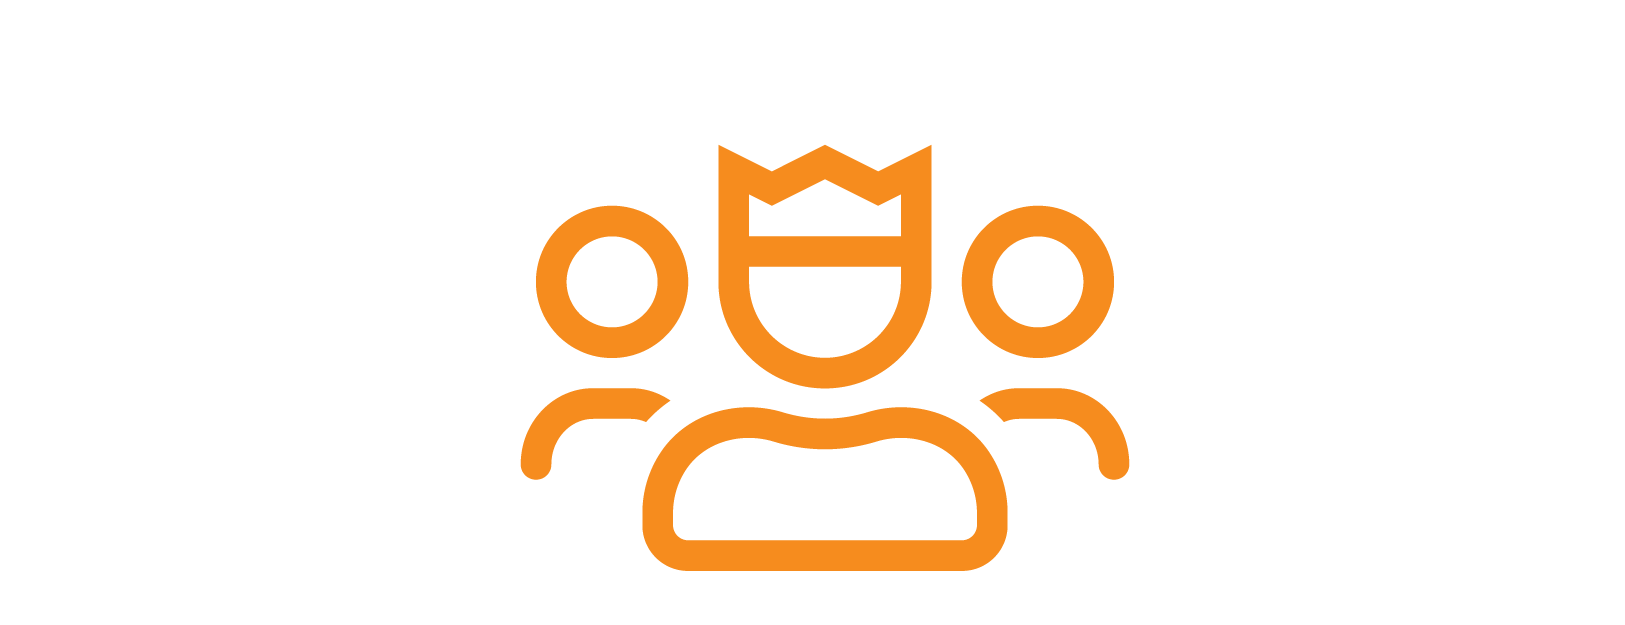 Breefly_2019-Site-Icon_Inserts-390x215_UsersCrown-01.png